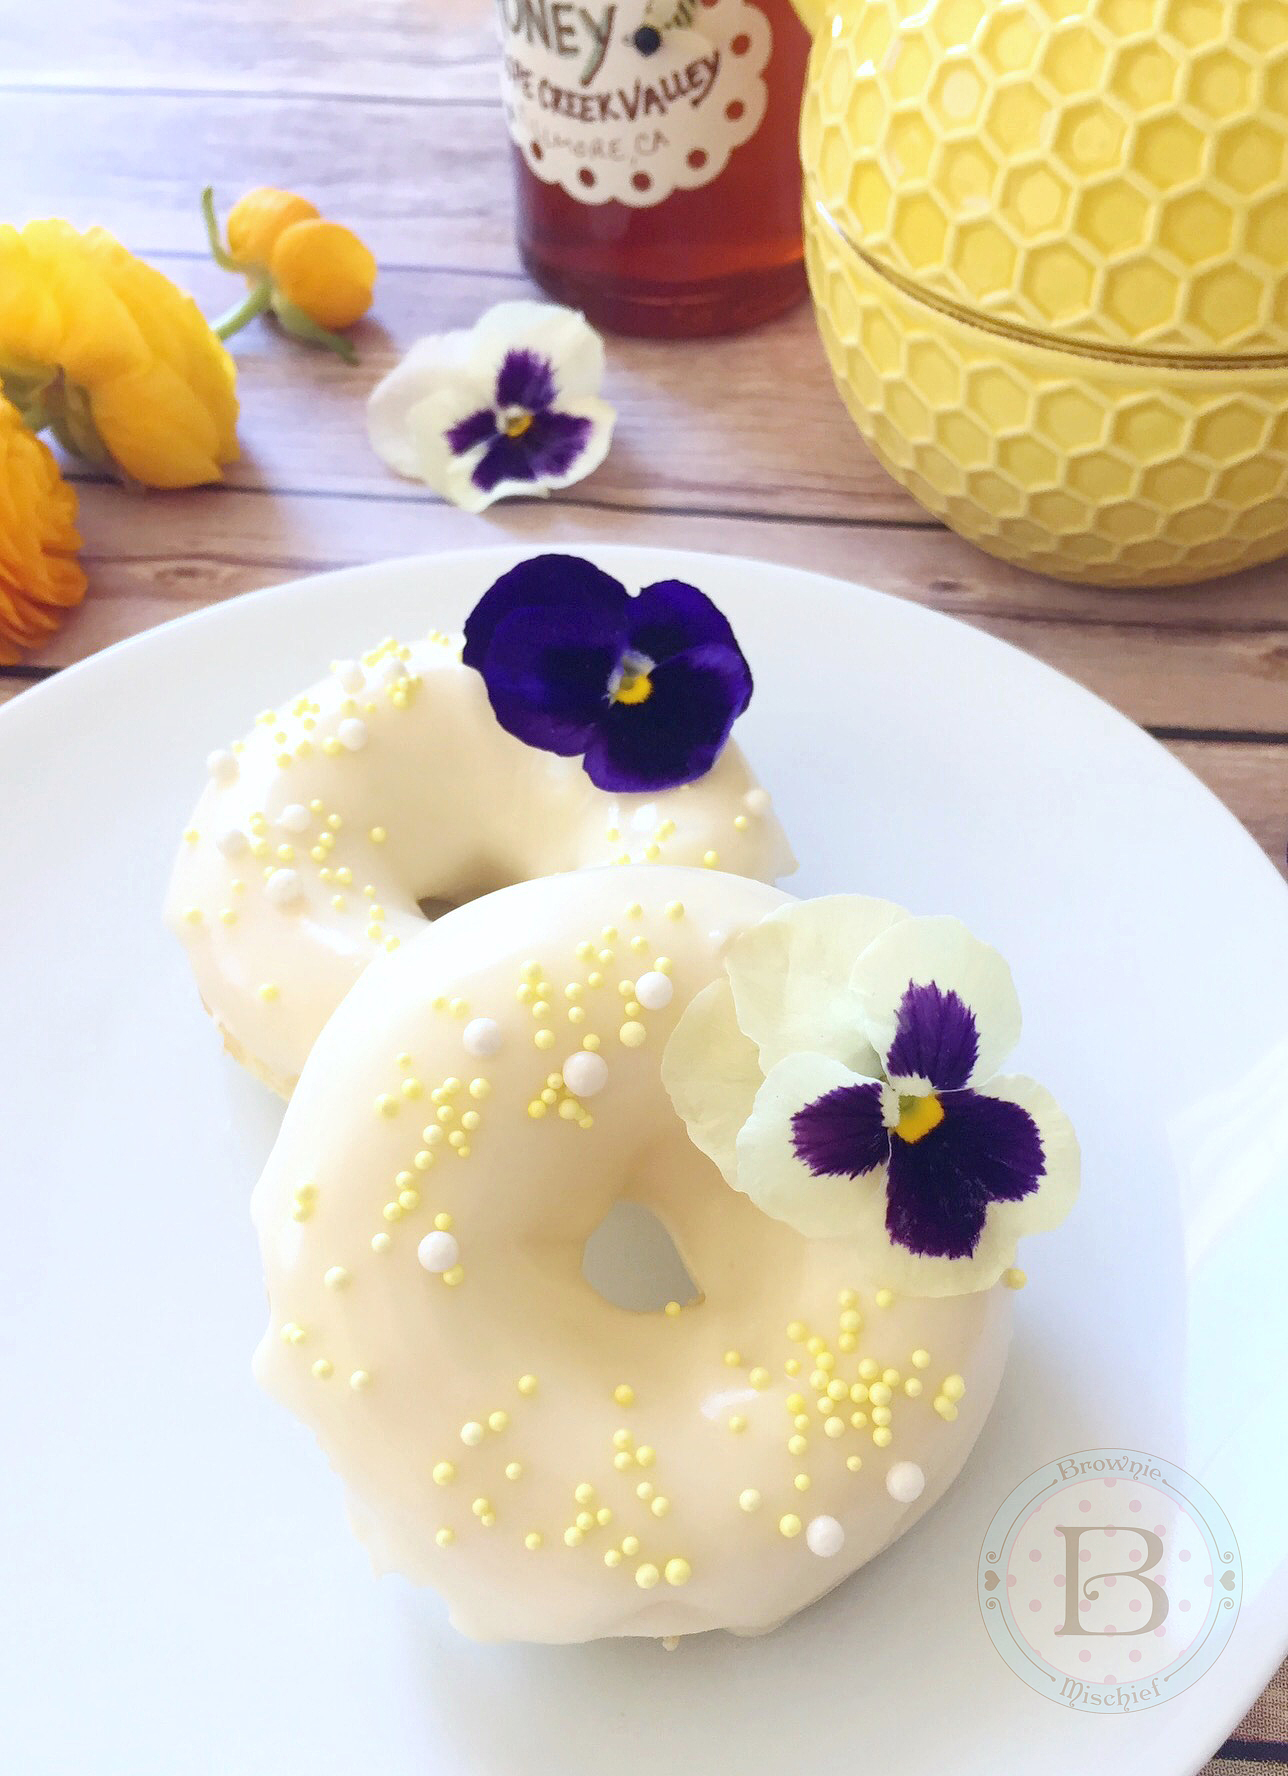 Lemon Buttermilk Donuts with H